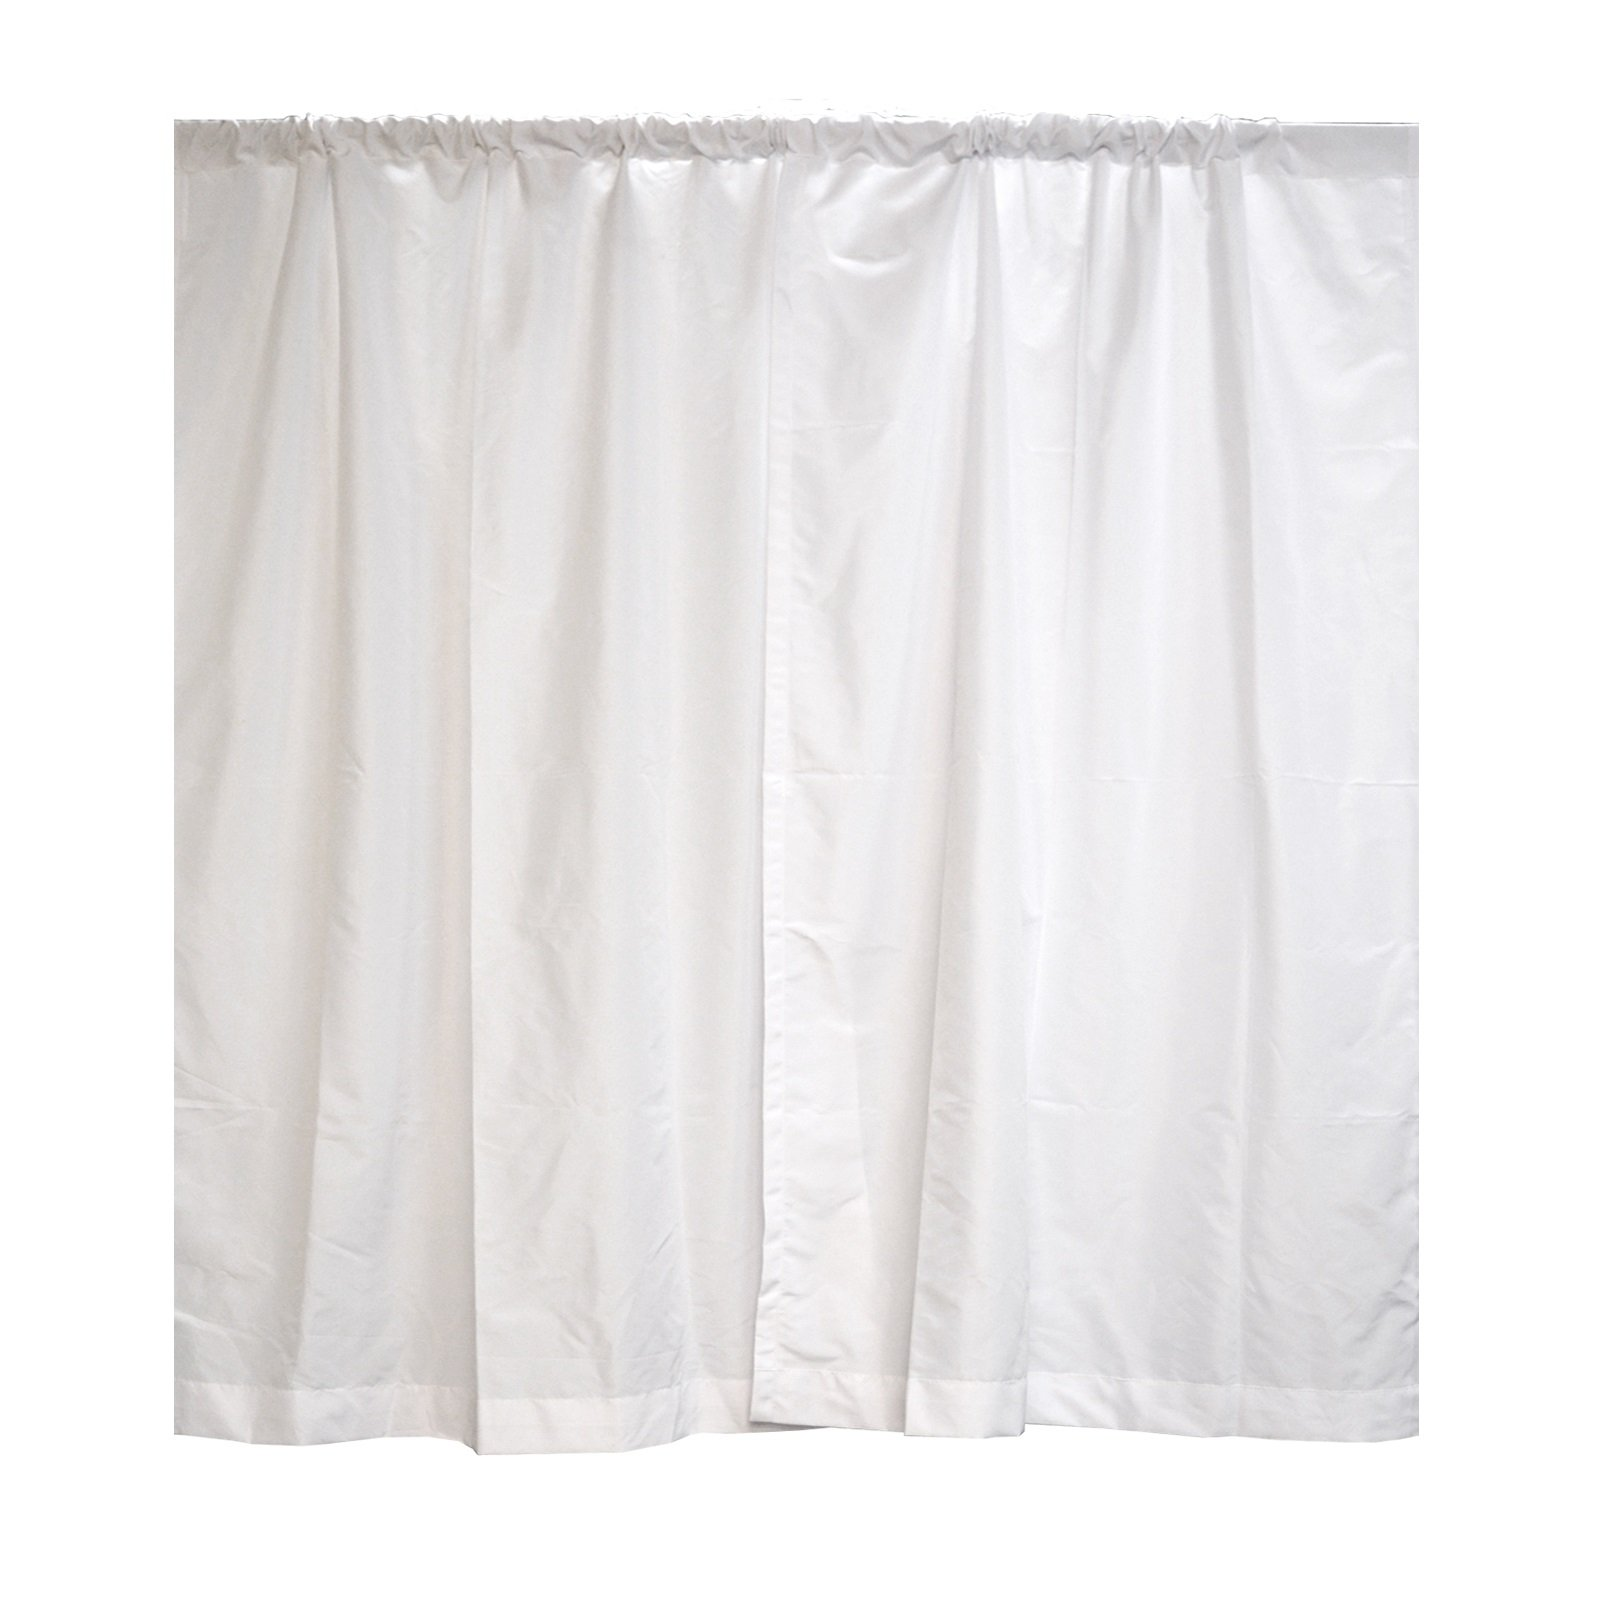 Premier Drape Panel by Crowd Control Center (94''x60'', White)